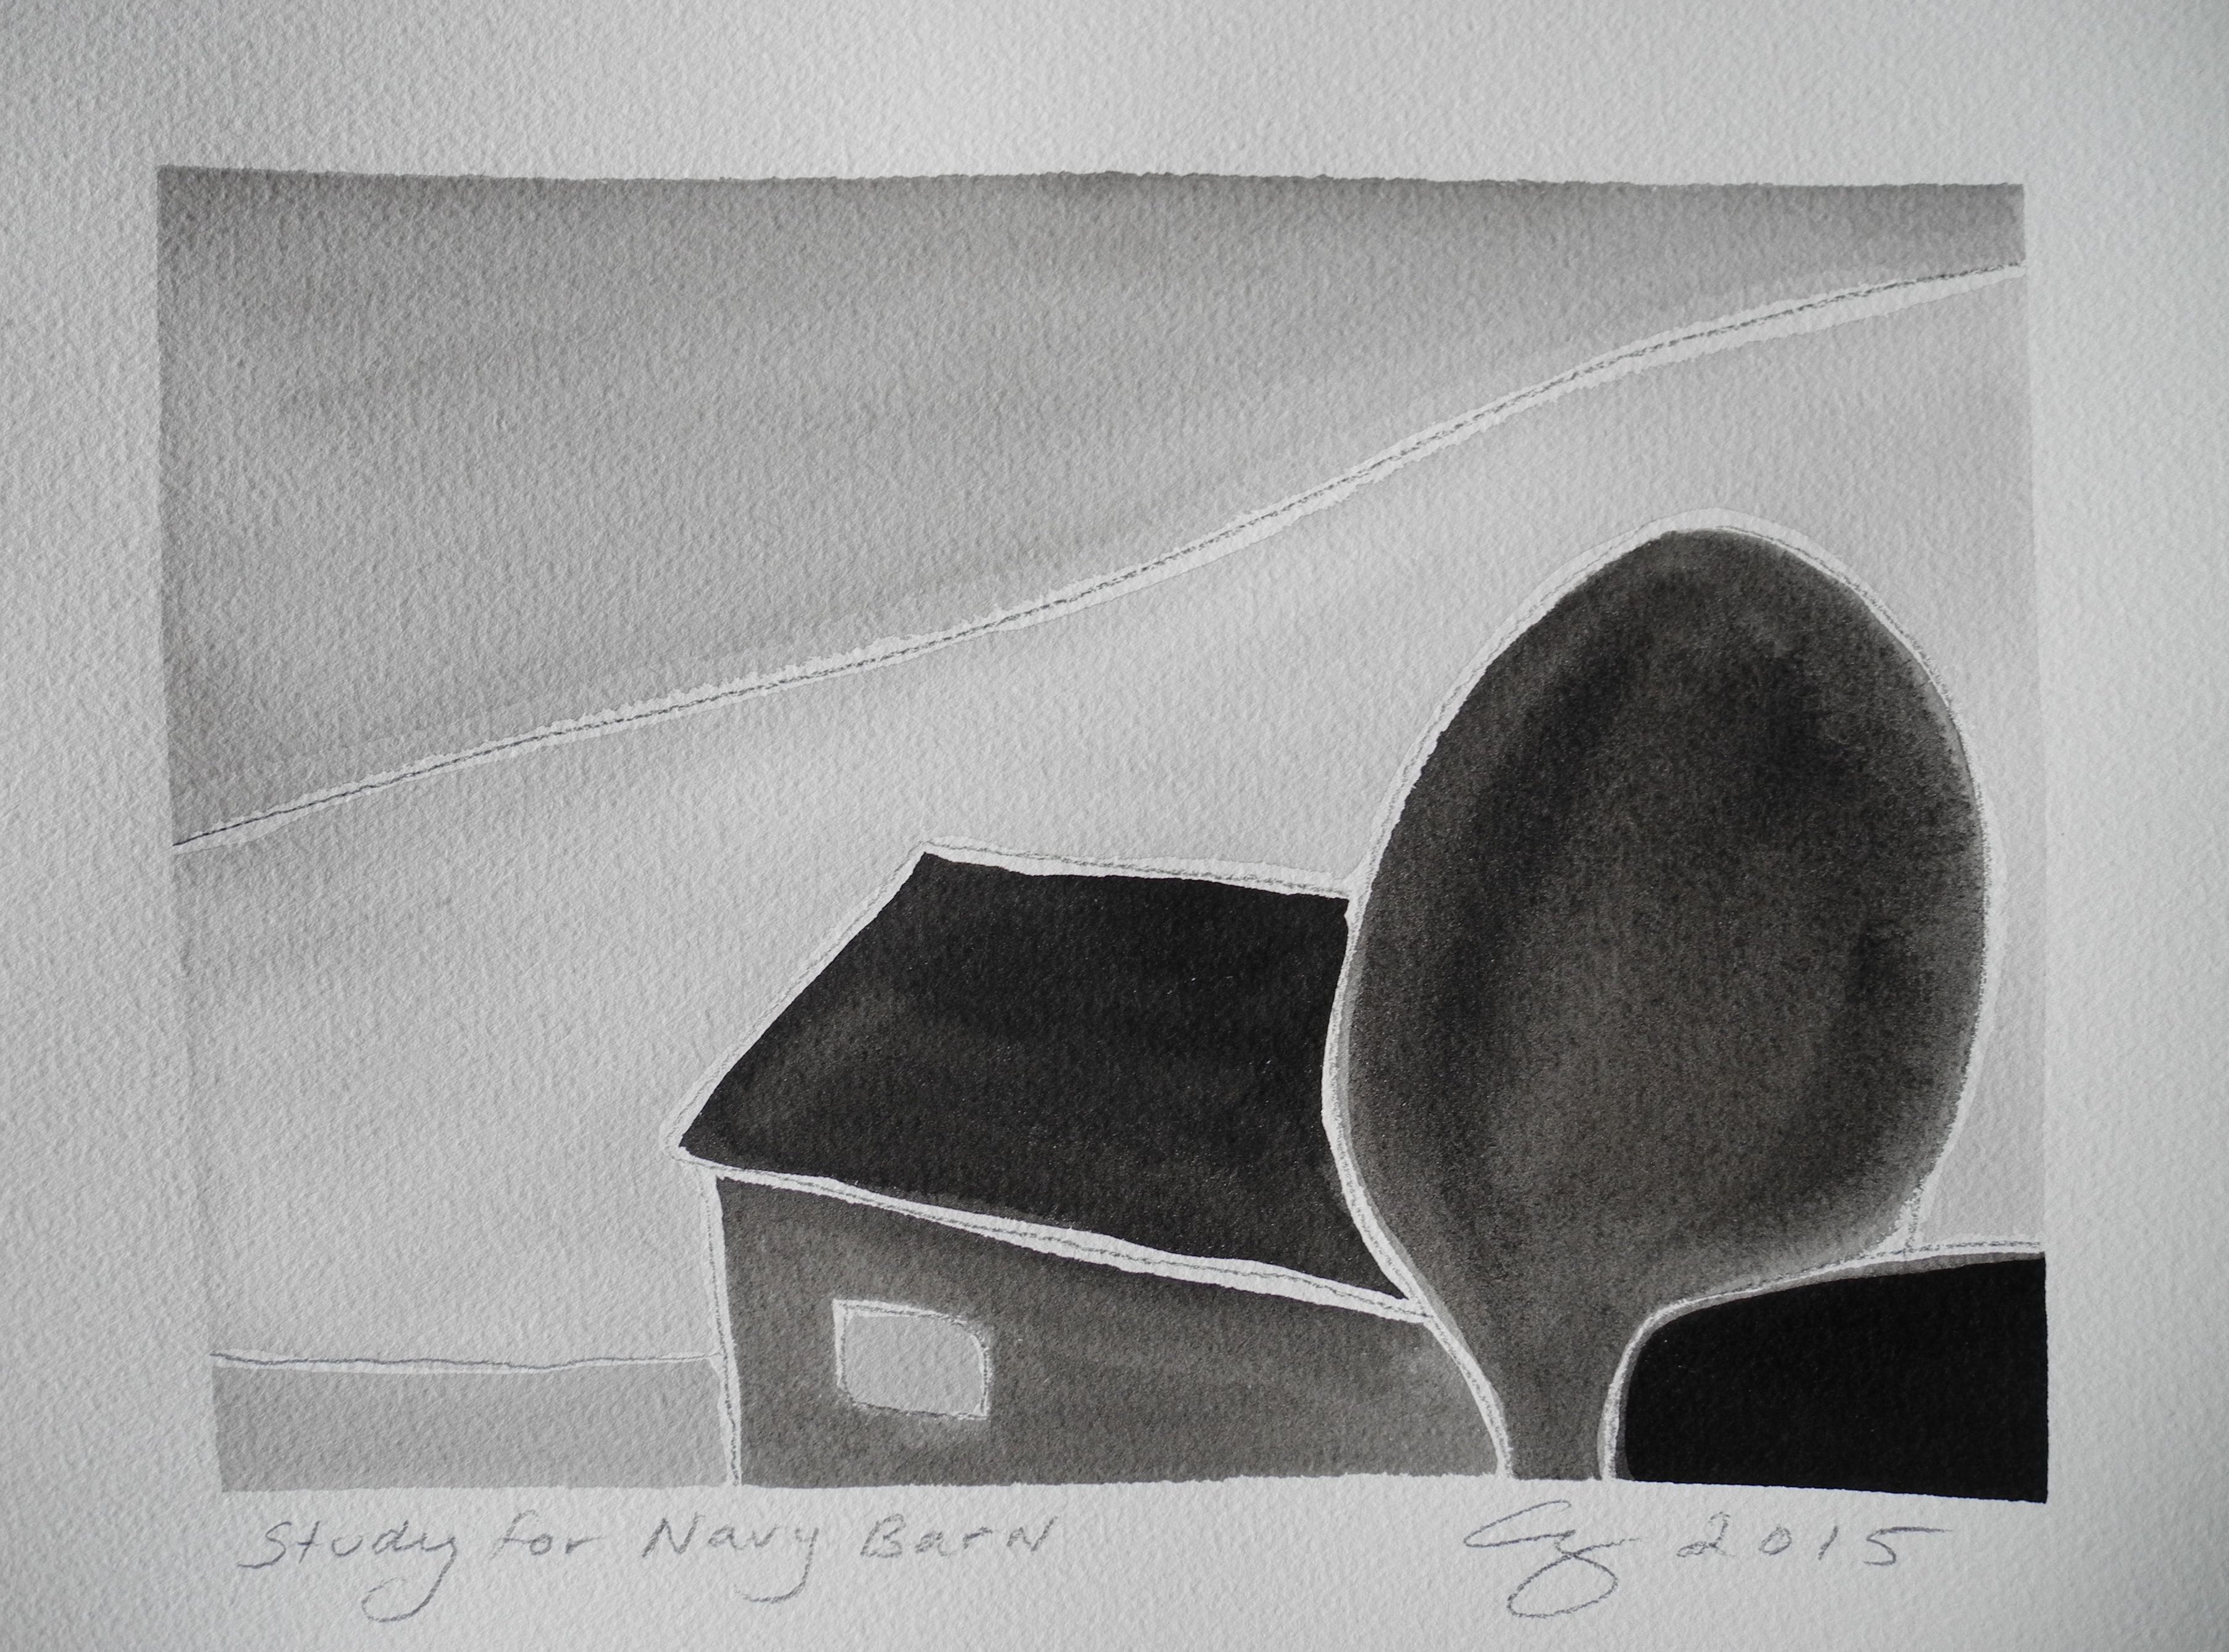 Study for Navy Barn